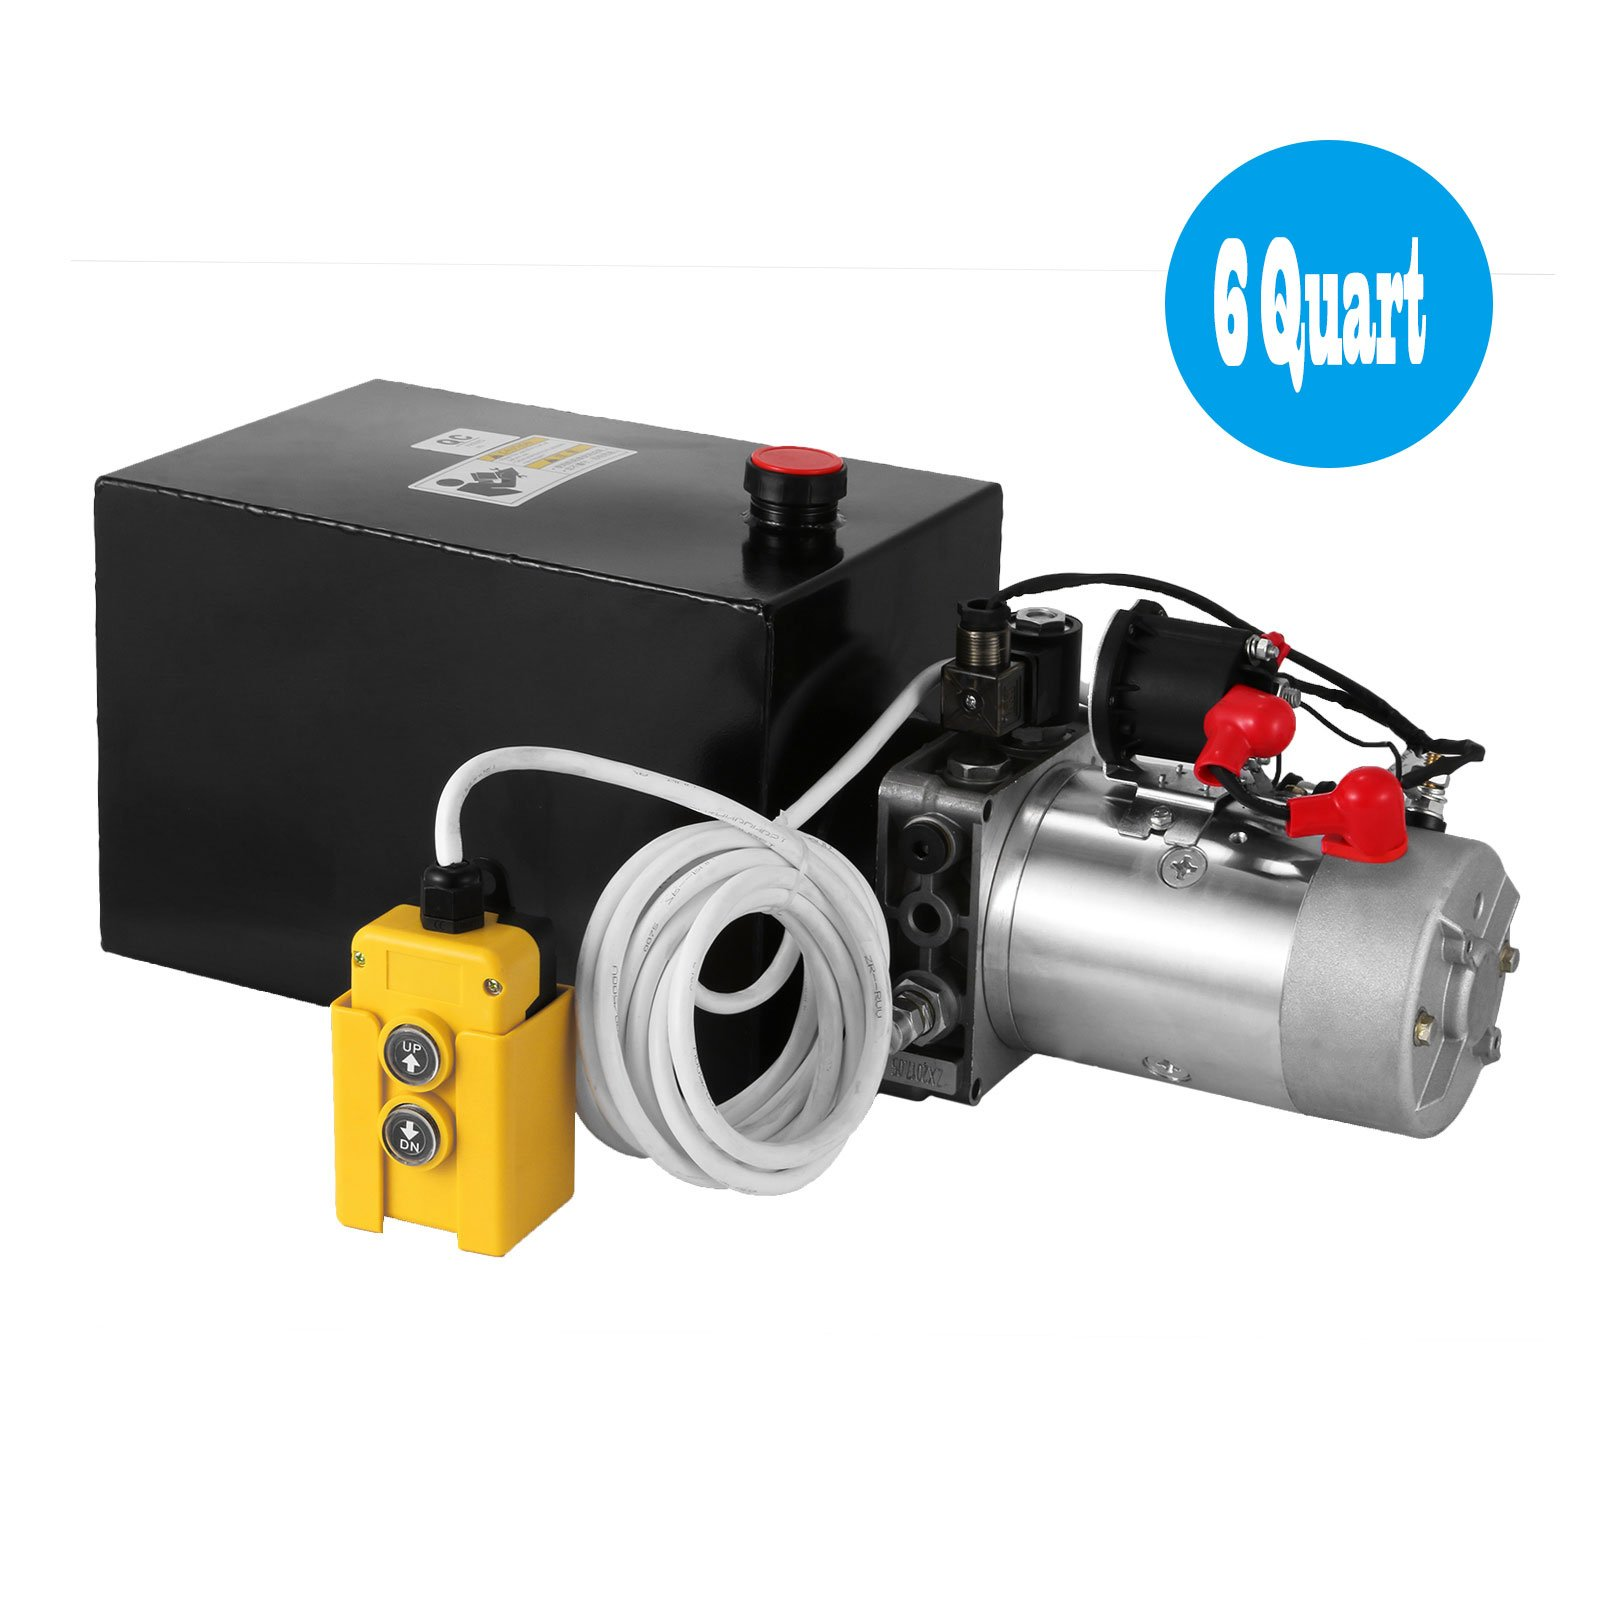 Happybuy 12V/DC Hydraulic Pump Double Acting Solenoid Operation Supply Unit W/ Remote Controller Hydraulic Power Unit For Dump Dump Truck Unloading Crane Lifting (6 Quart Double Acting Steel)